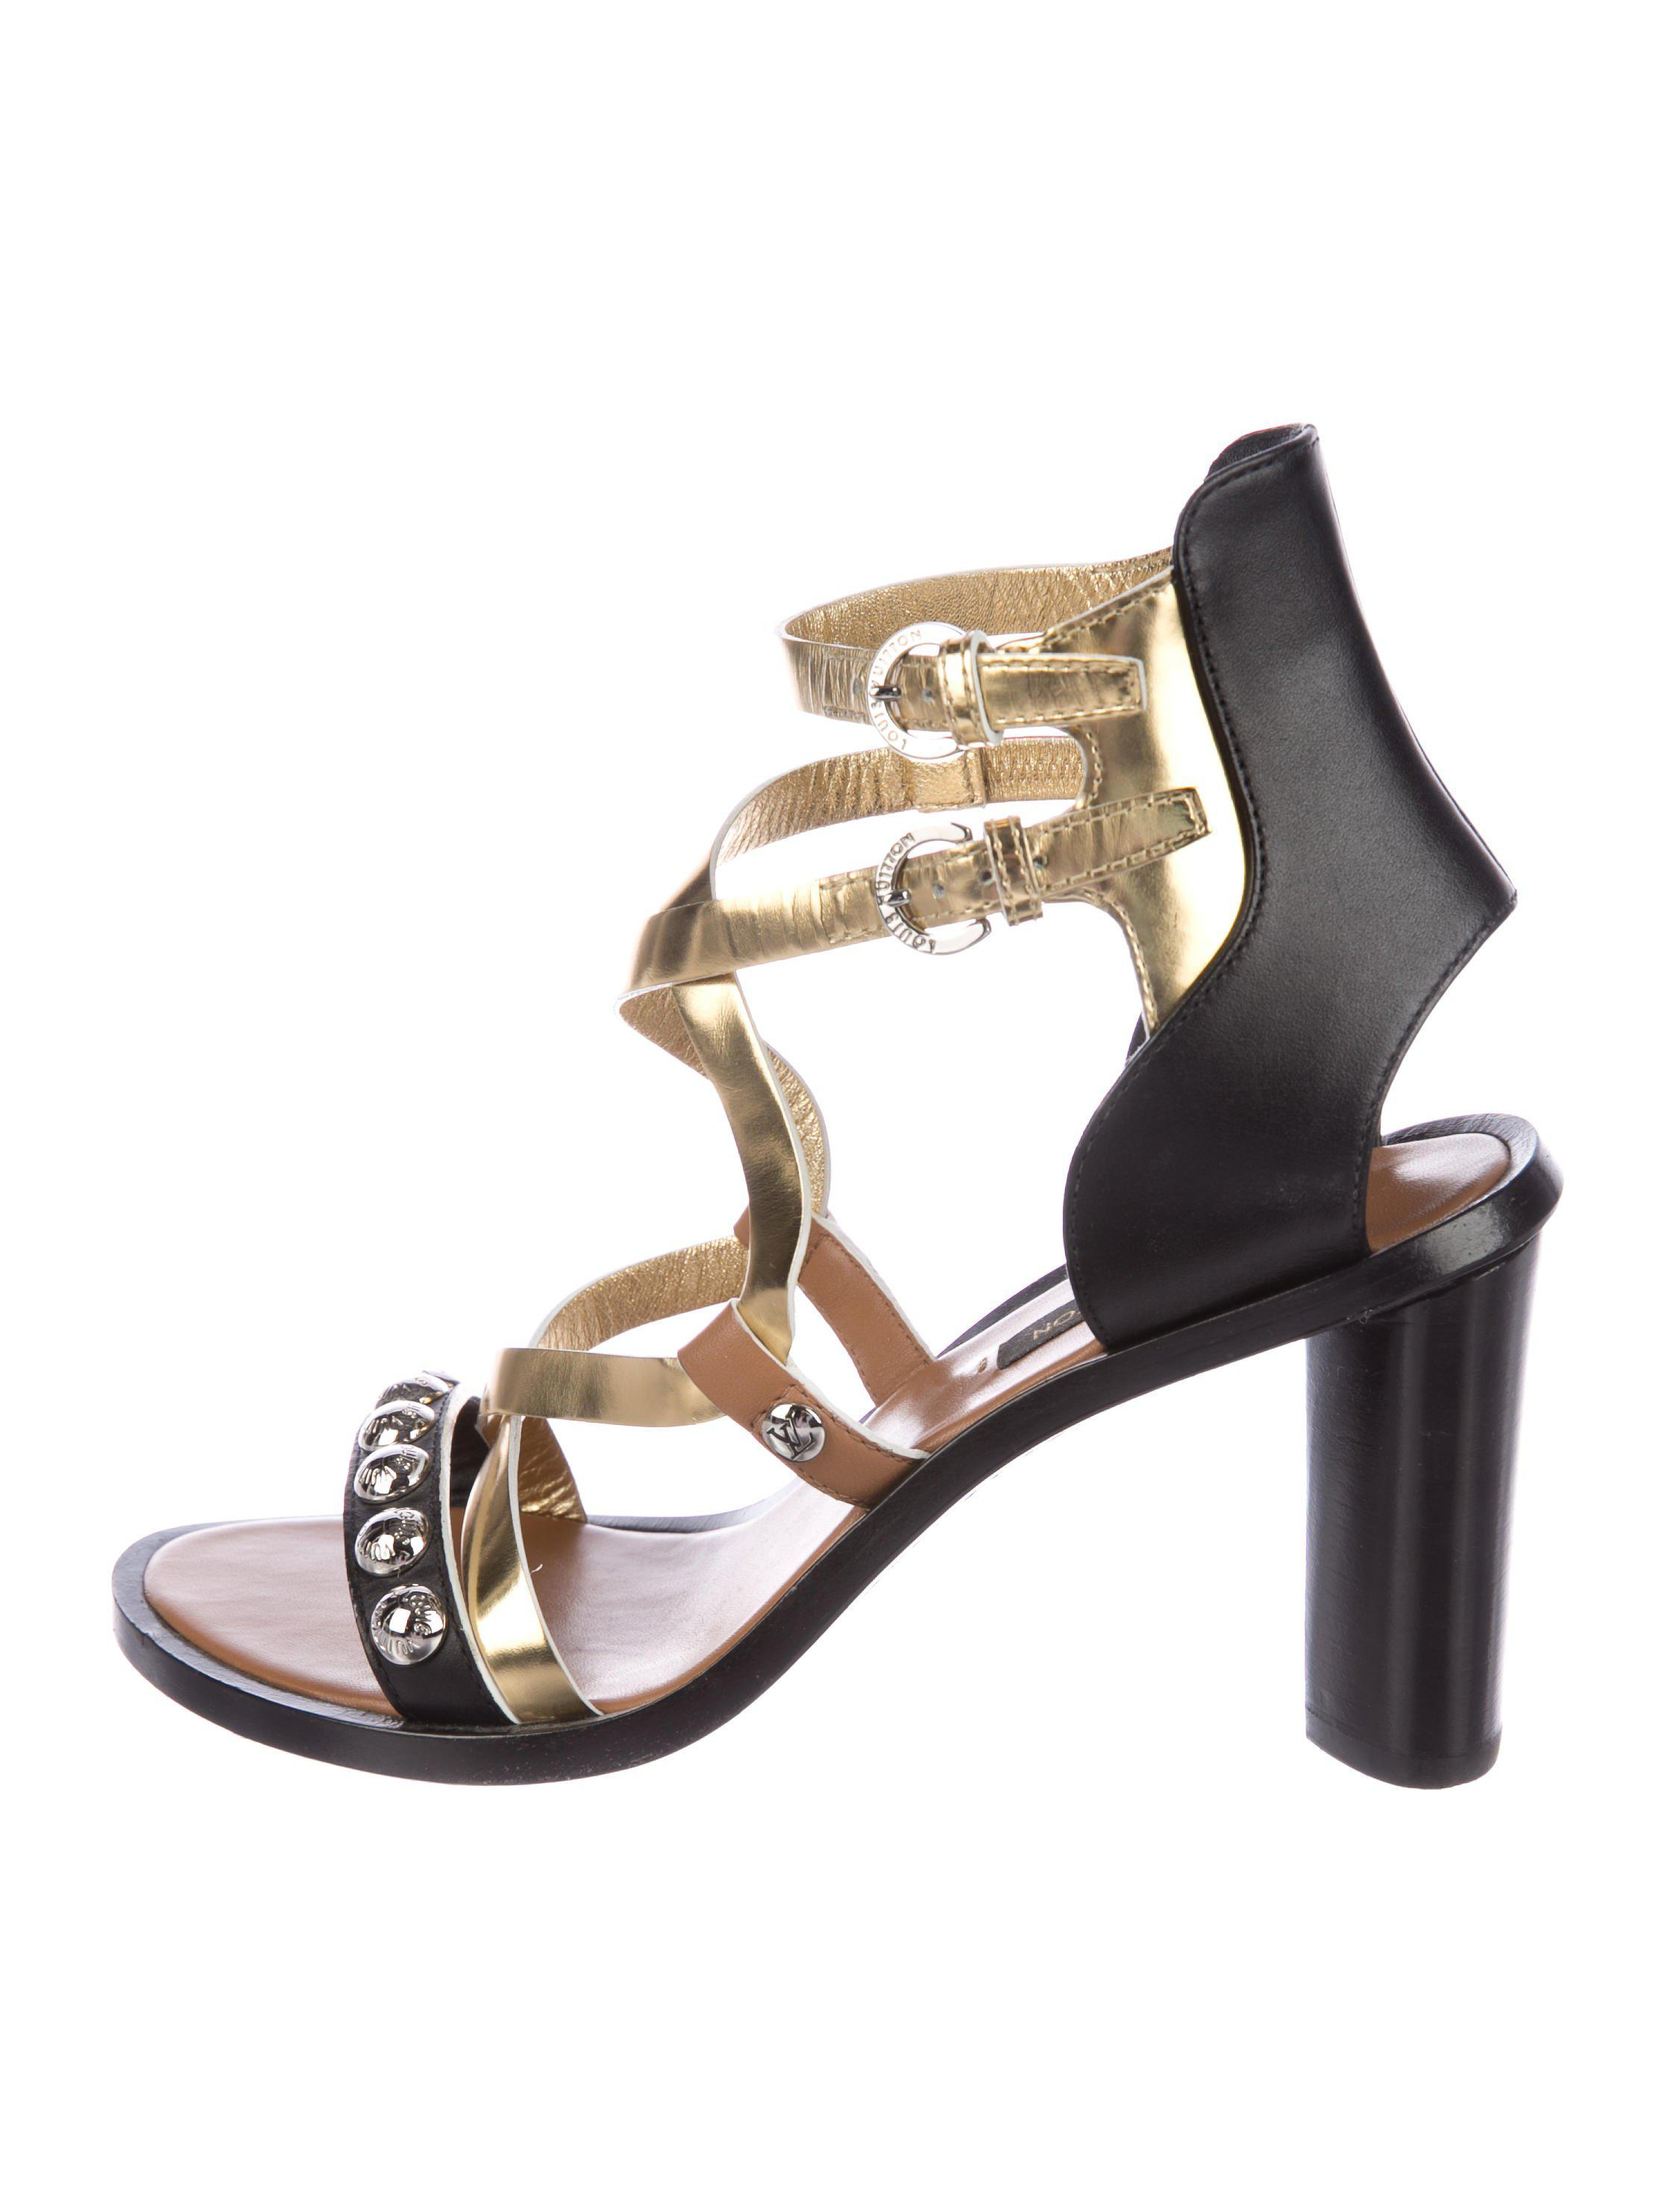 e71211cd4cd8 Lyst - Louis Vuitton Studded Crossover Sandals Black in Metallic